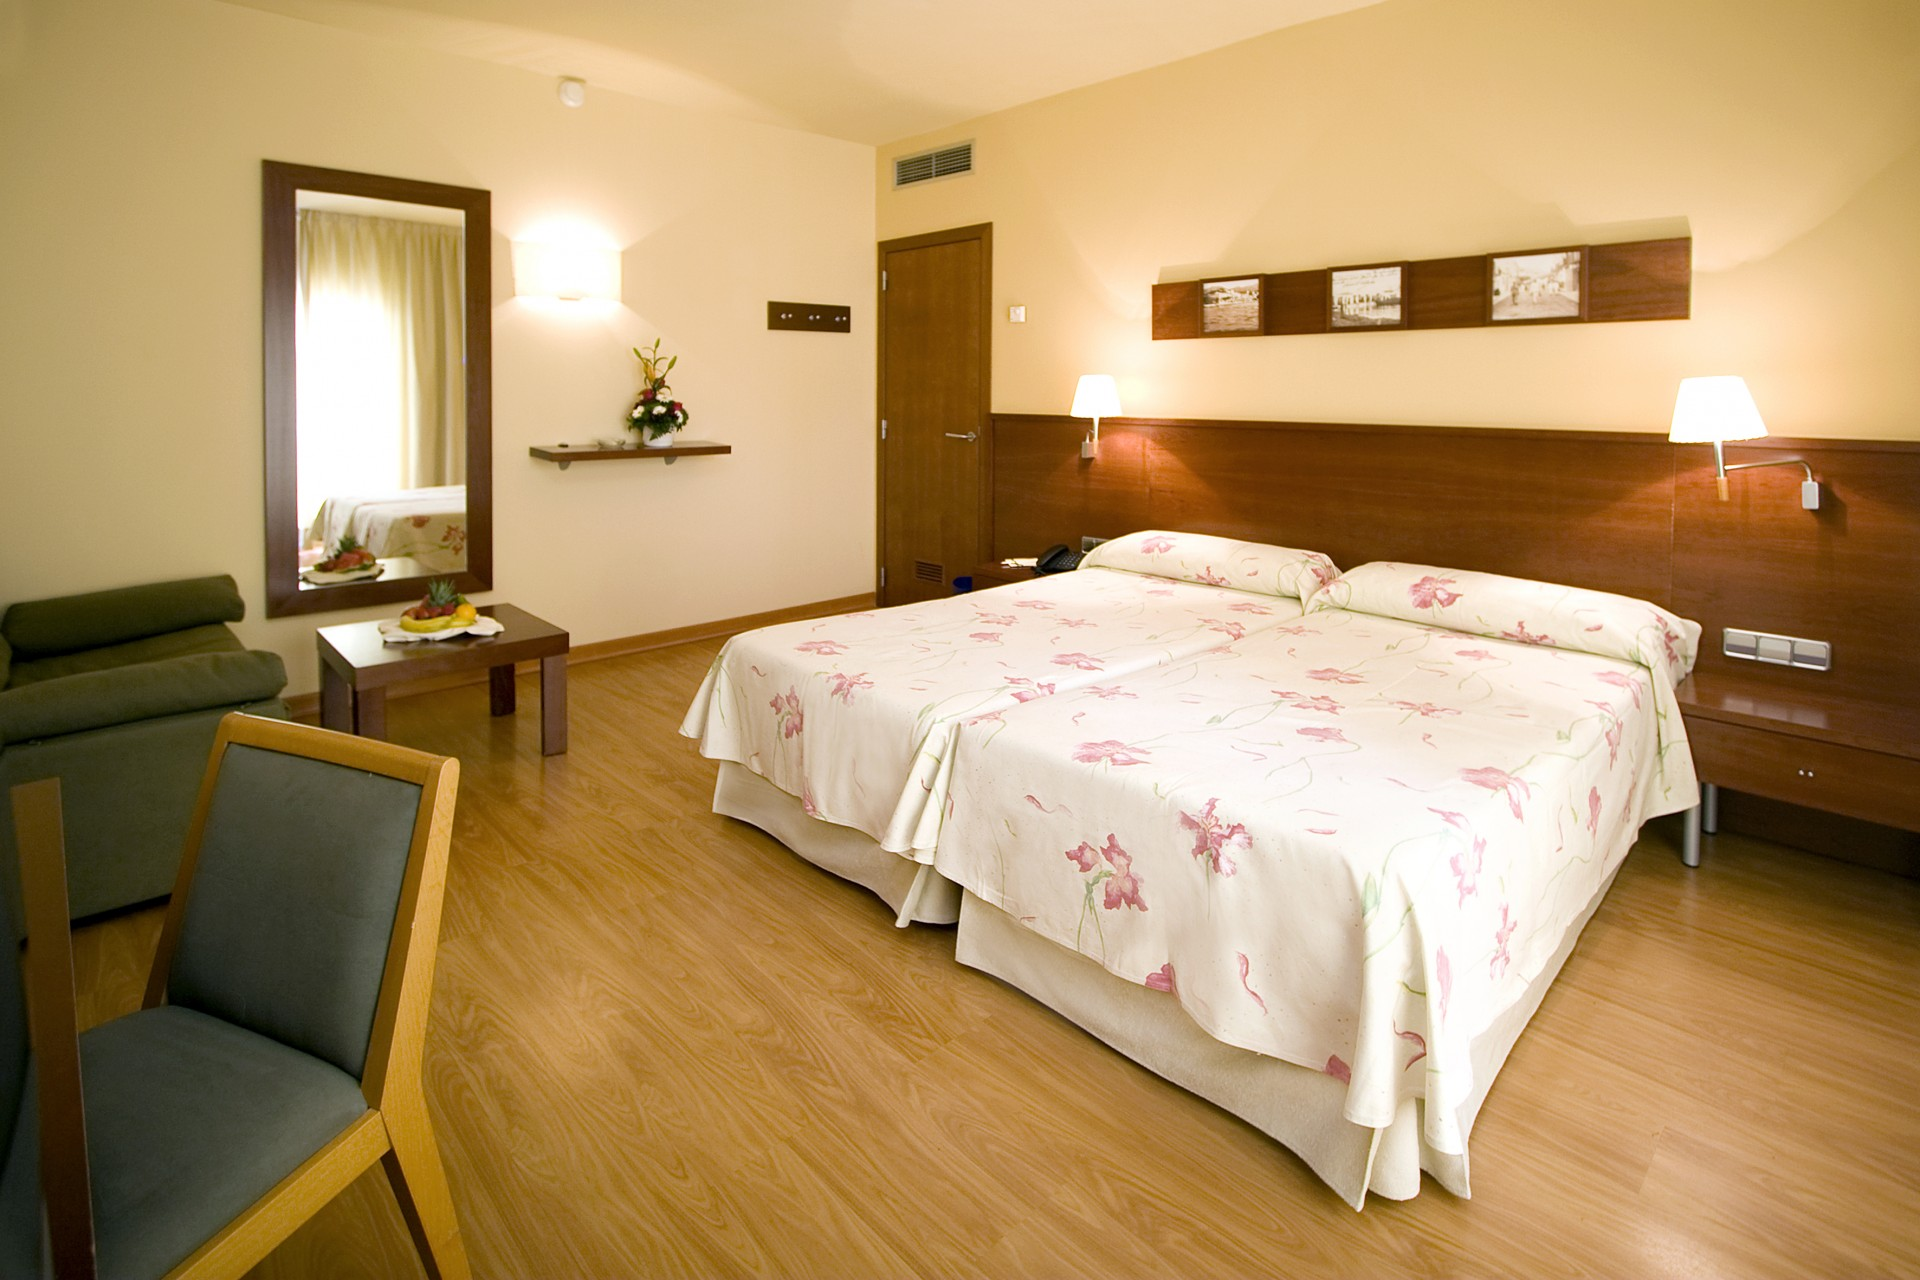 Rooms in Santa Margarita beach, Roses (Spain) -spa included!